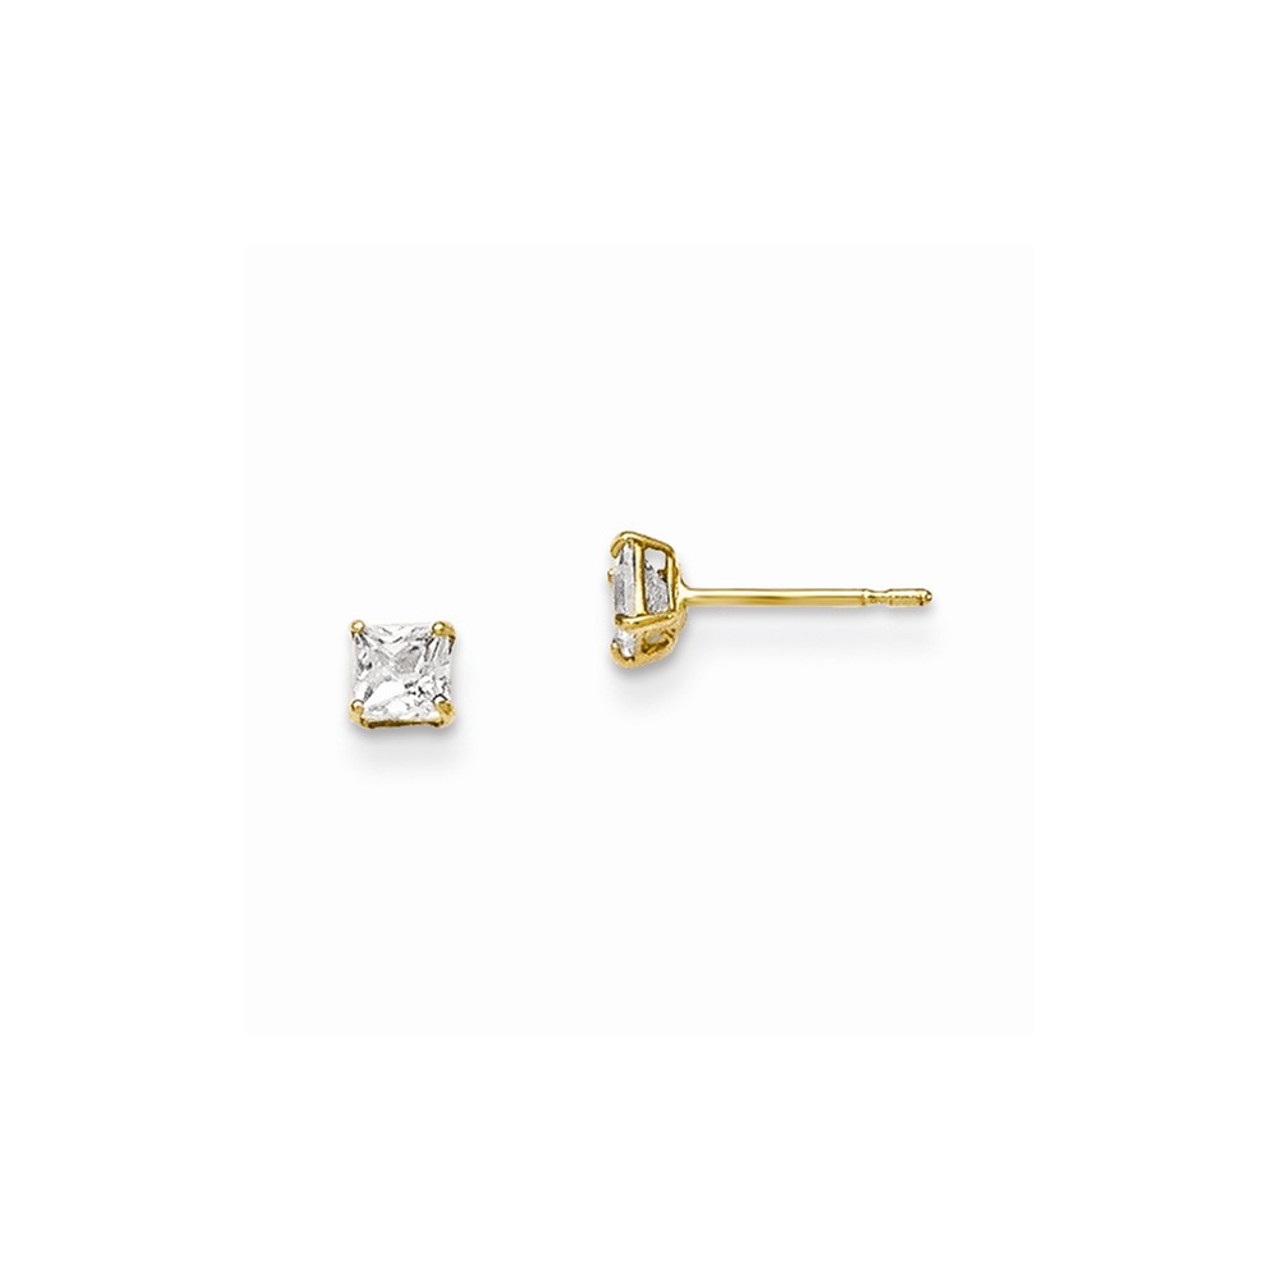 Solid 14k Yellow Gold 5mm Synthetic Sep Earrings